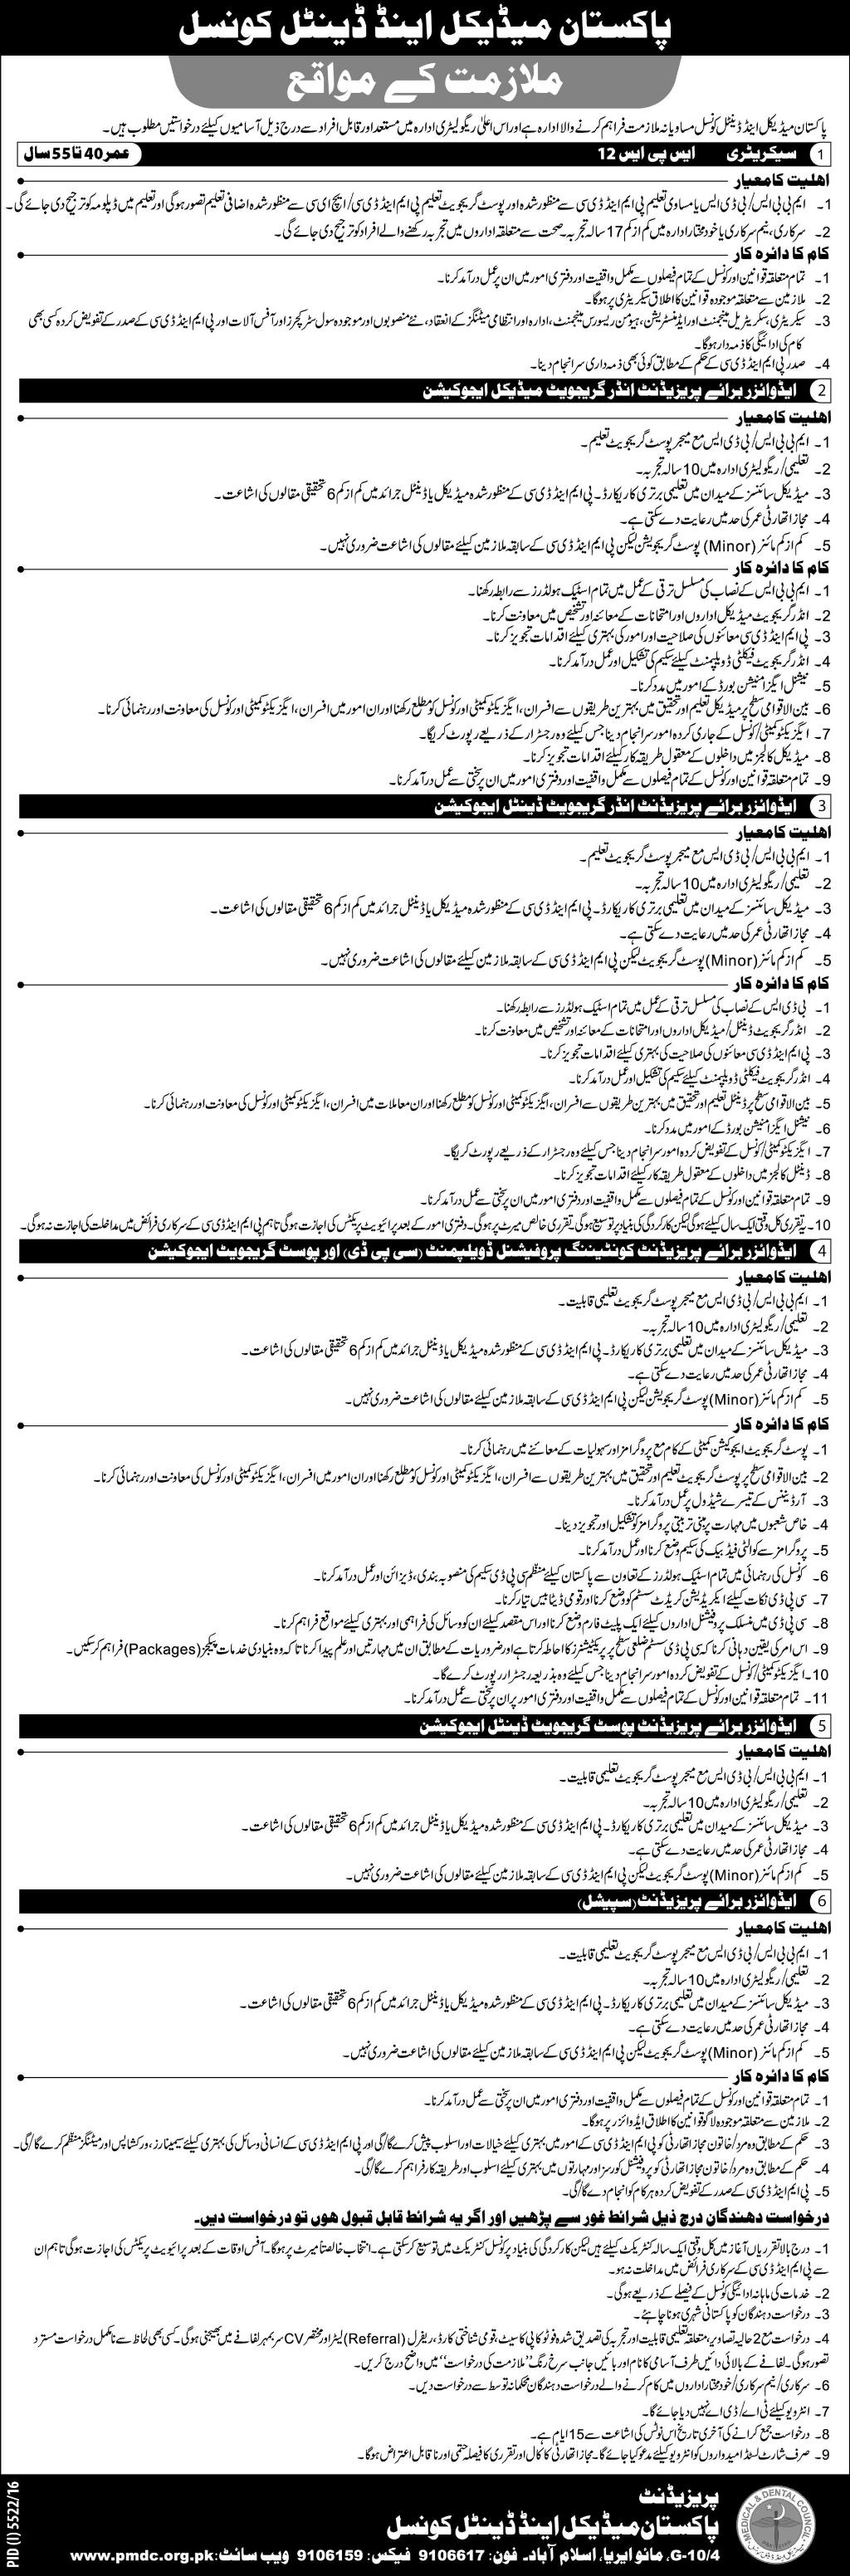 Pakistan Medical and Dental Council Islamabad Jobs PMDC Jobs